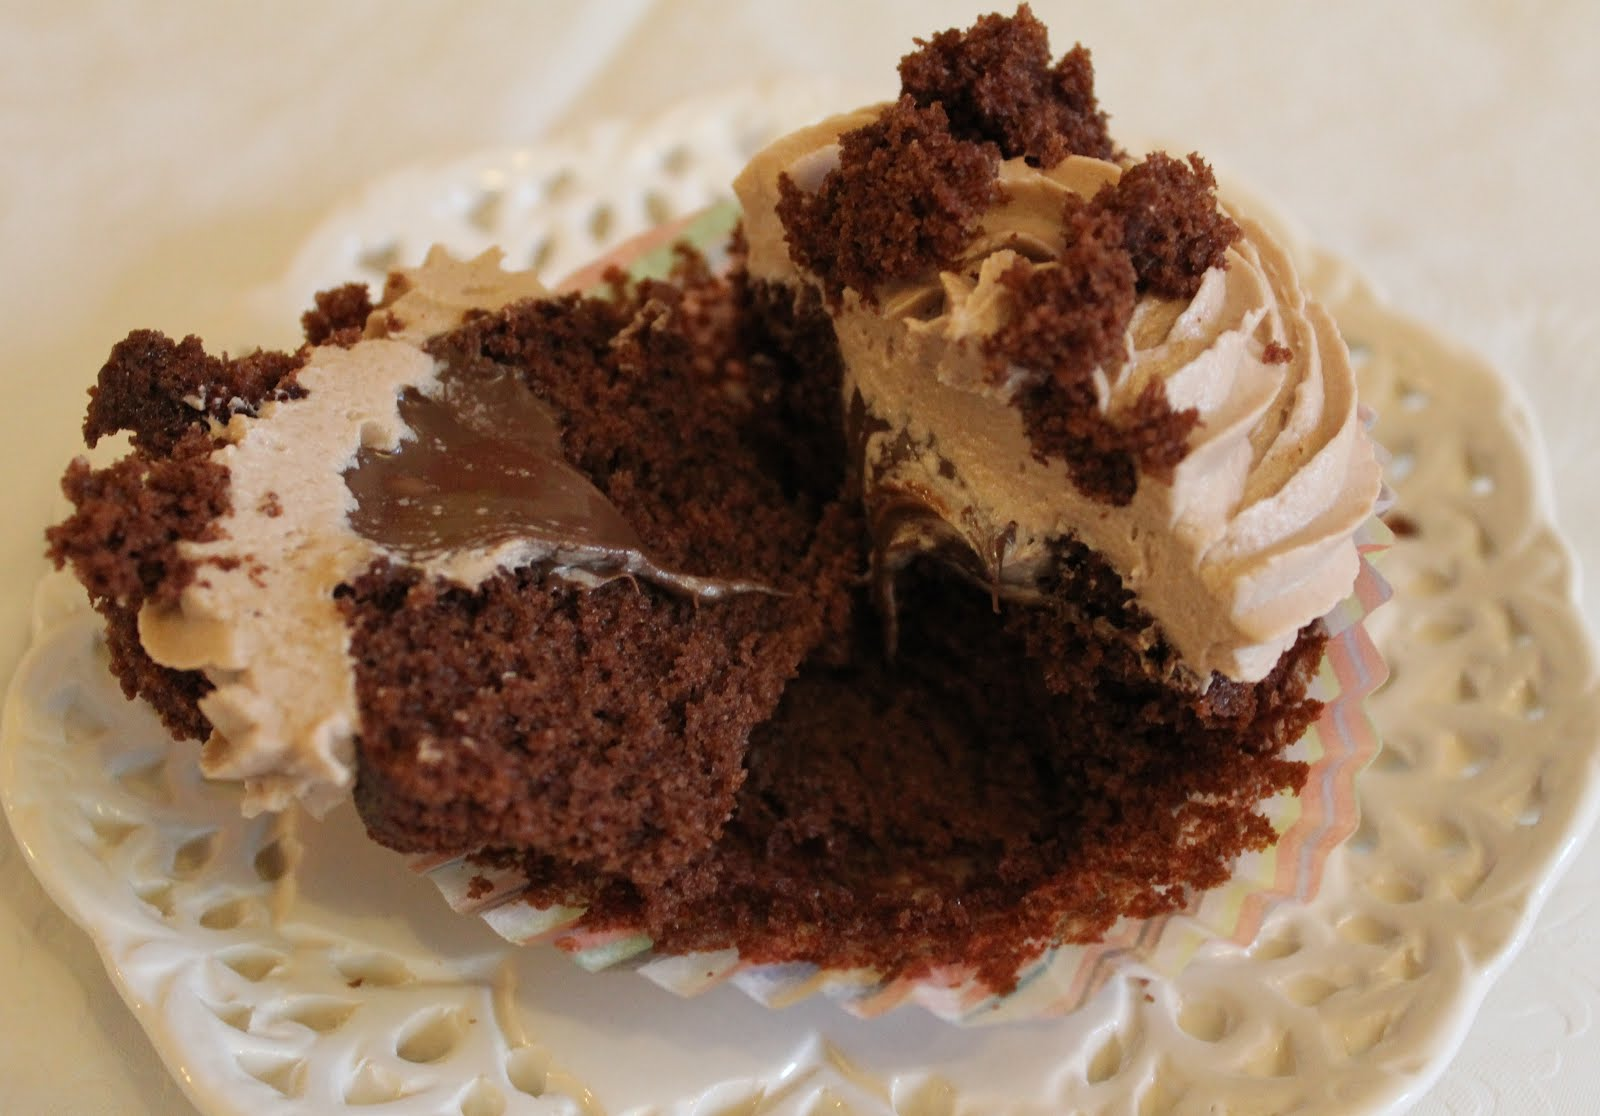 cup of tea solves everything: Nutella cupcakes